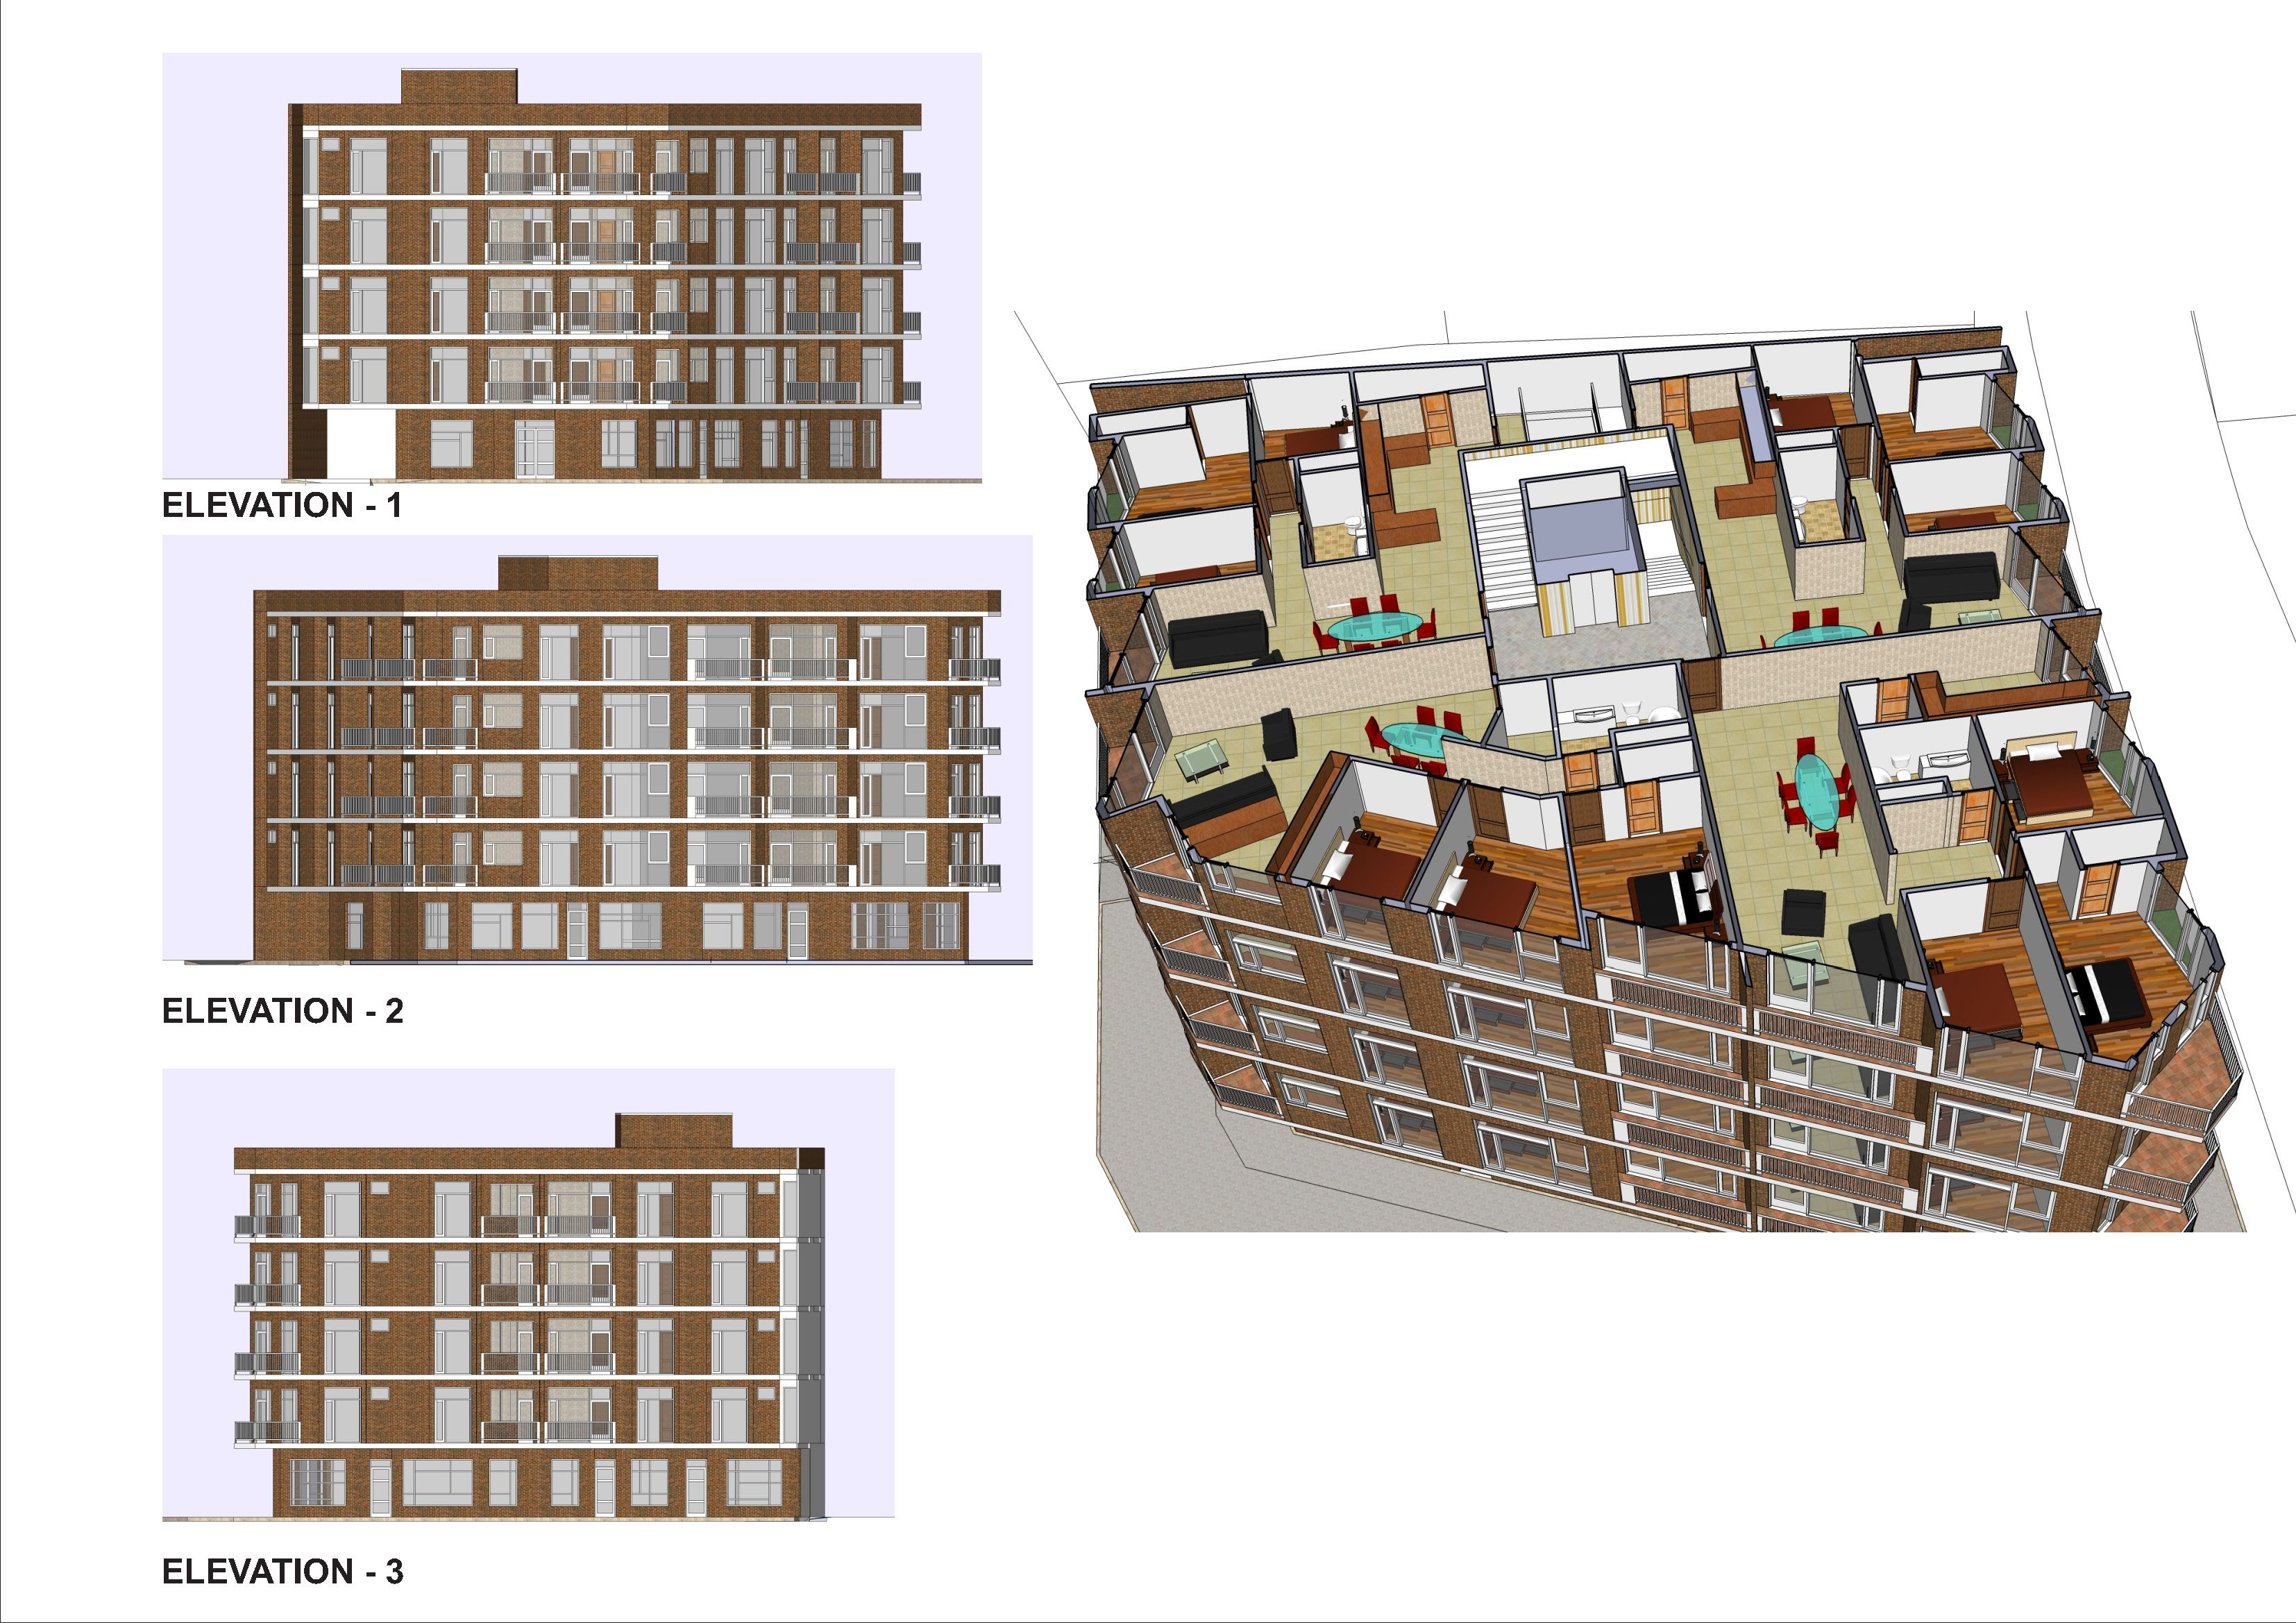 Apartment building plans location aksaray turkey new for Small apartment building designs